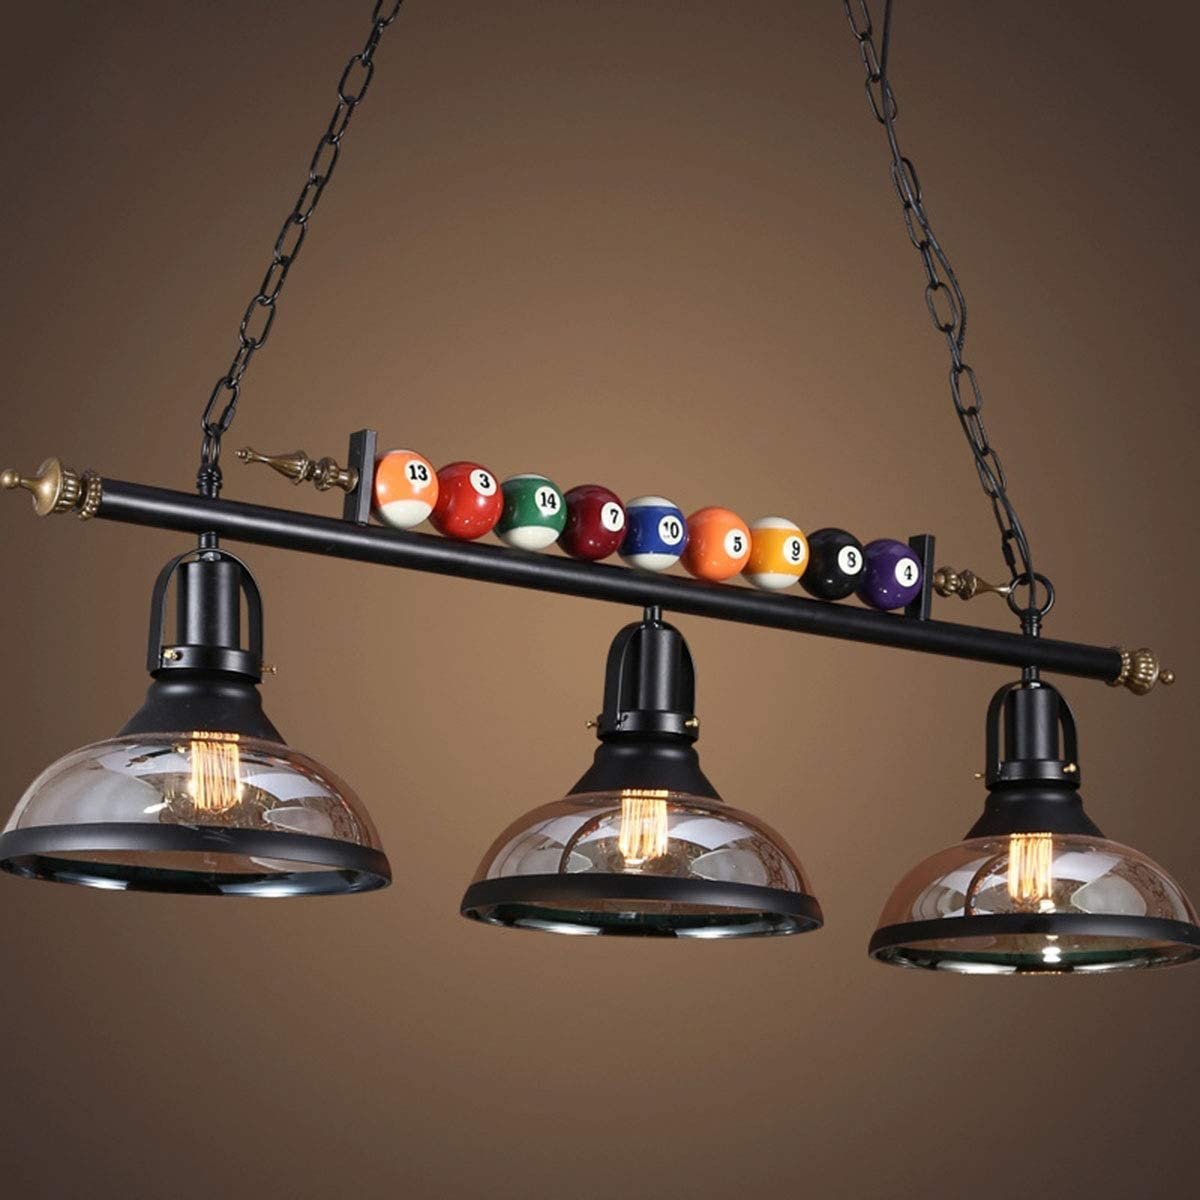 Simple Retro Pool Table Light 3-Light Billiard Pendant Light with Billiards Ball and Clear Glass Shade for Game Room Beer Party